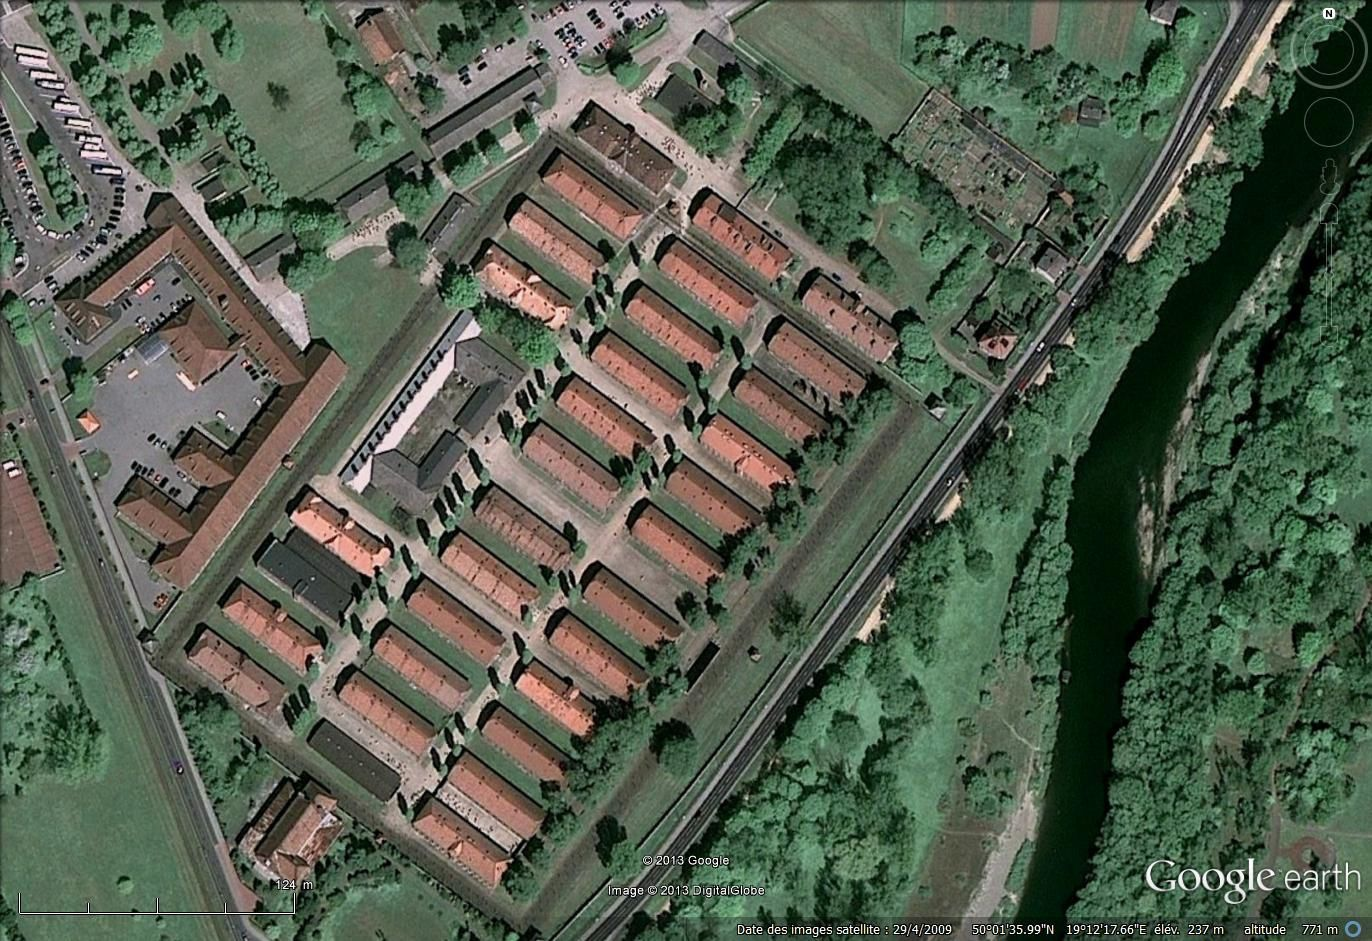 Le camp d'Auschwitz en Pologne, Google earth 2009 : plus d'un million de victimes de la folie humaine